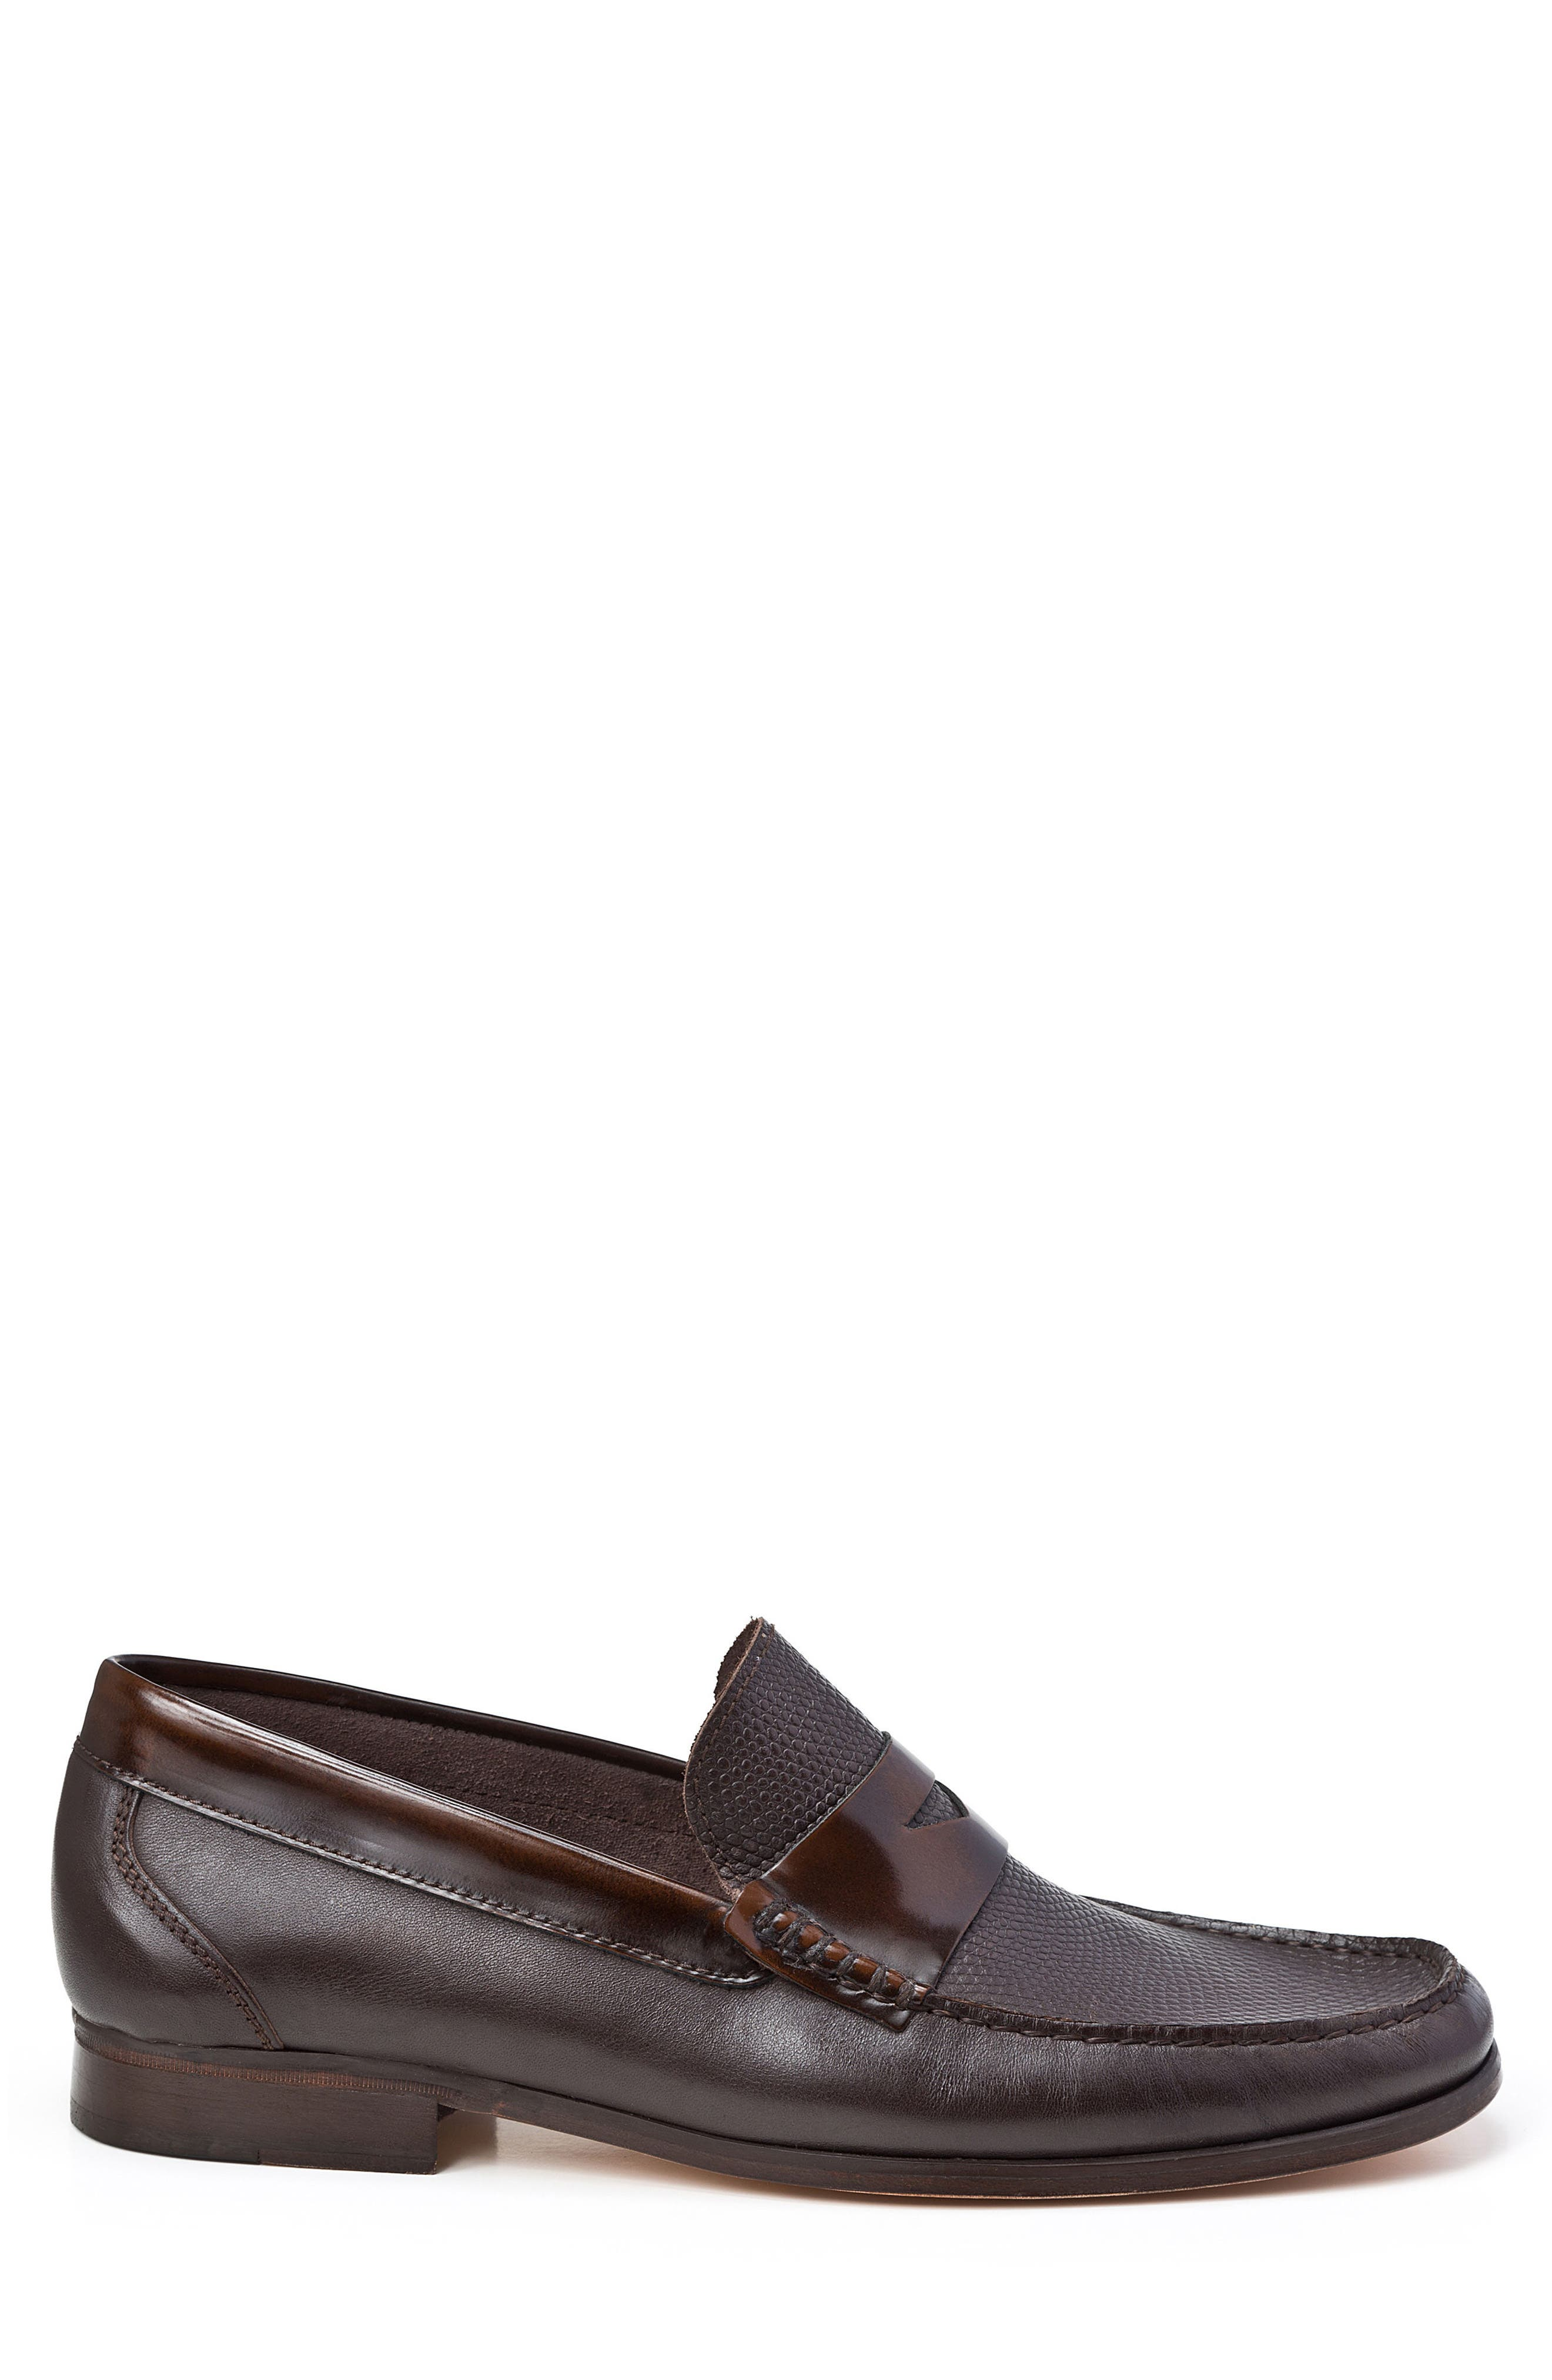 SANDRO MOSCOLONI,                             Bilbao Pebble Embossed Penny Loafer,                             Alternate thumbnail 3, color,                             BROWN